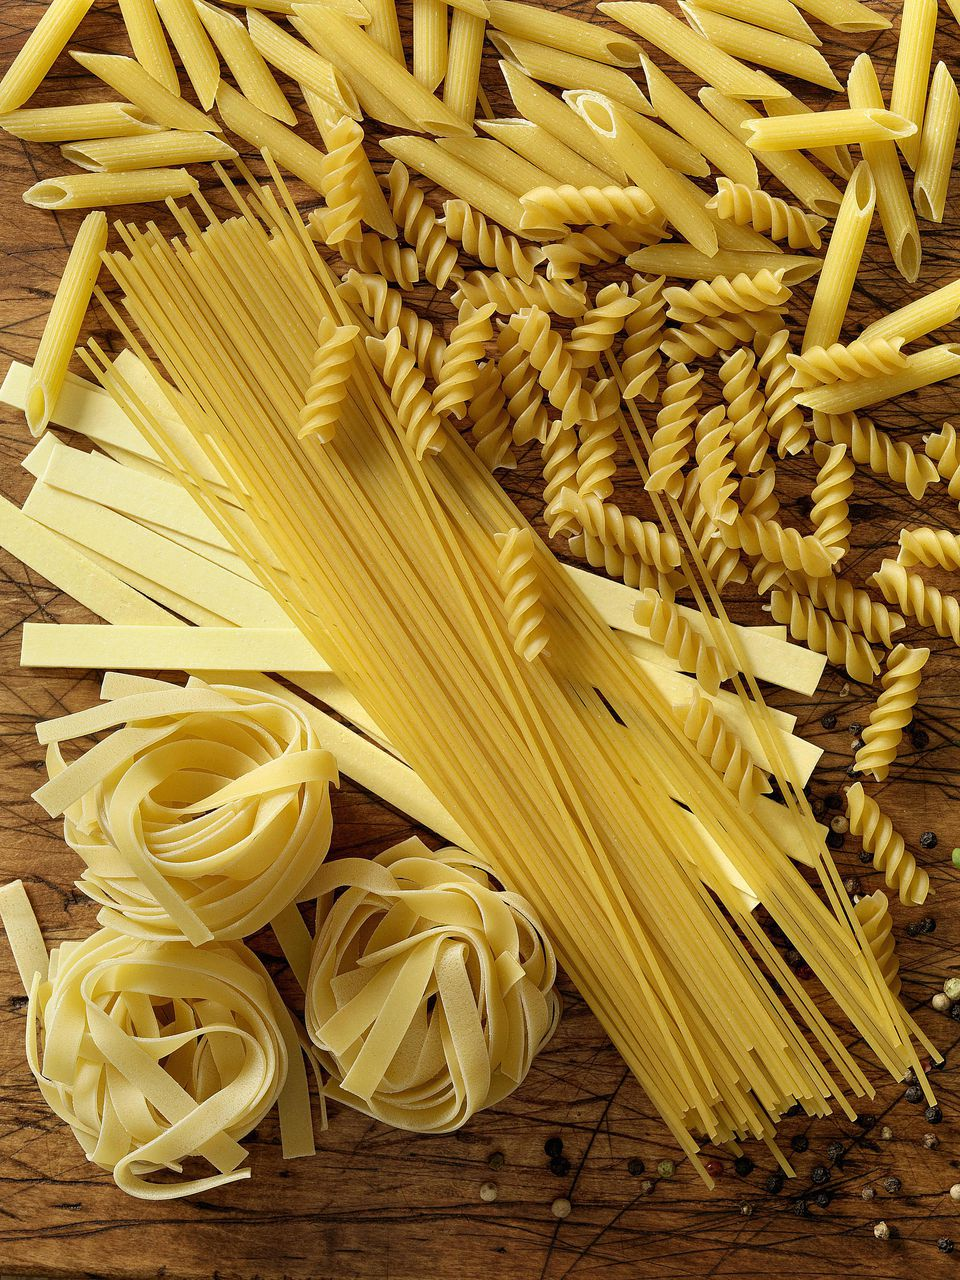 A wide assortment of different pastas